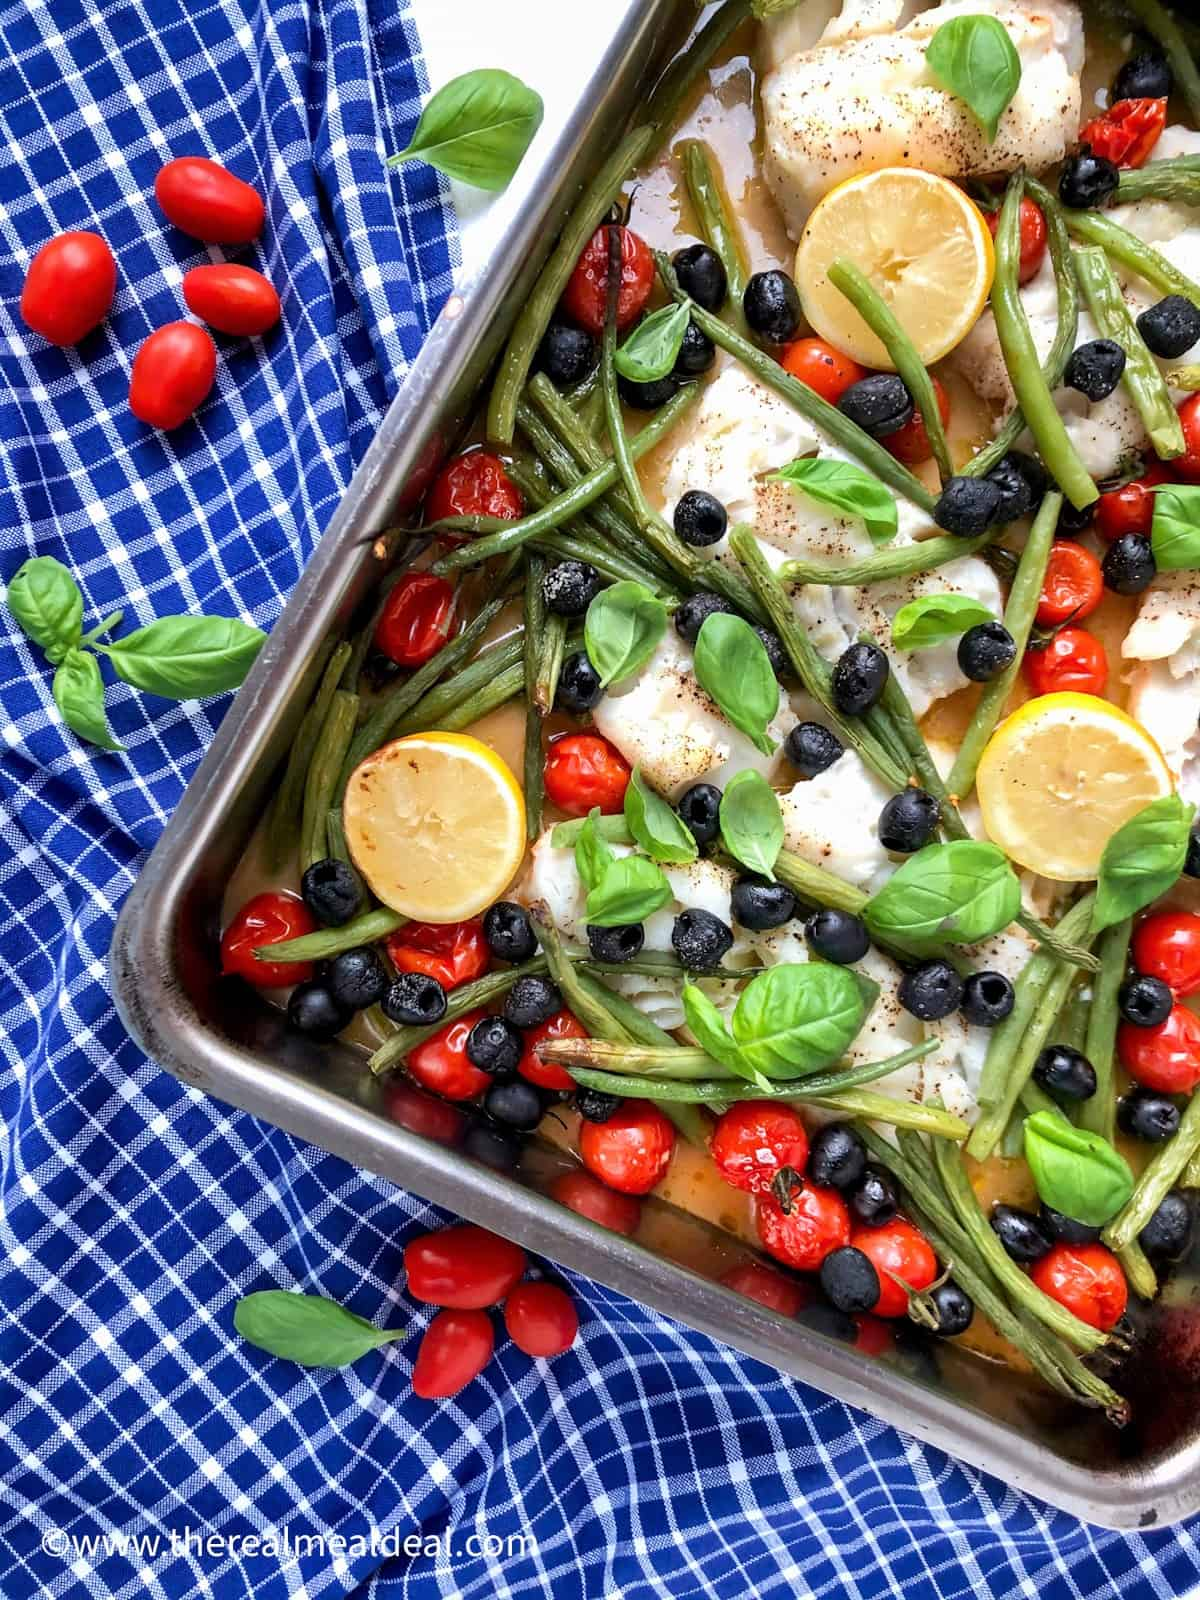 baked cod black olives cherry tomatoes and green beans in metal baking tray topped with fresh basil leaves